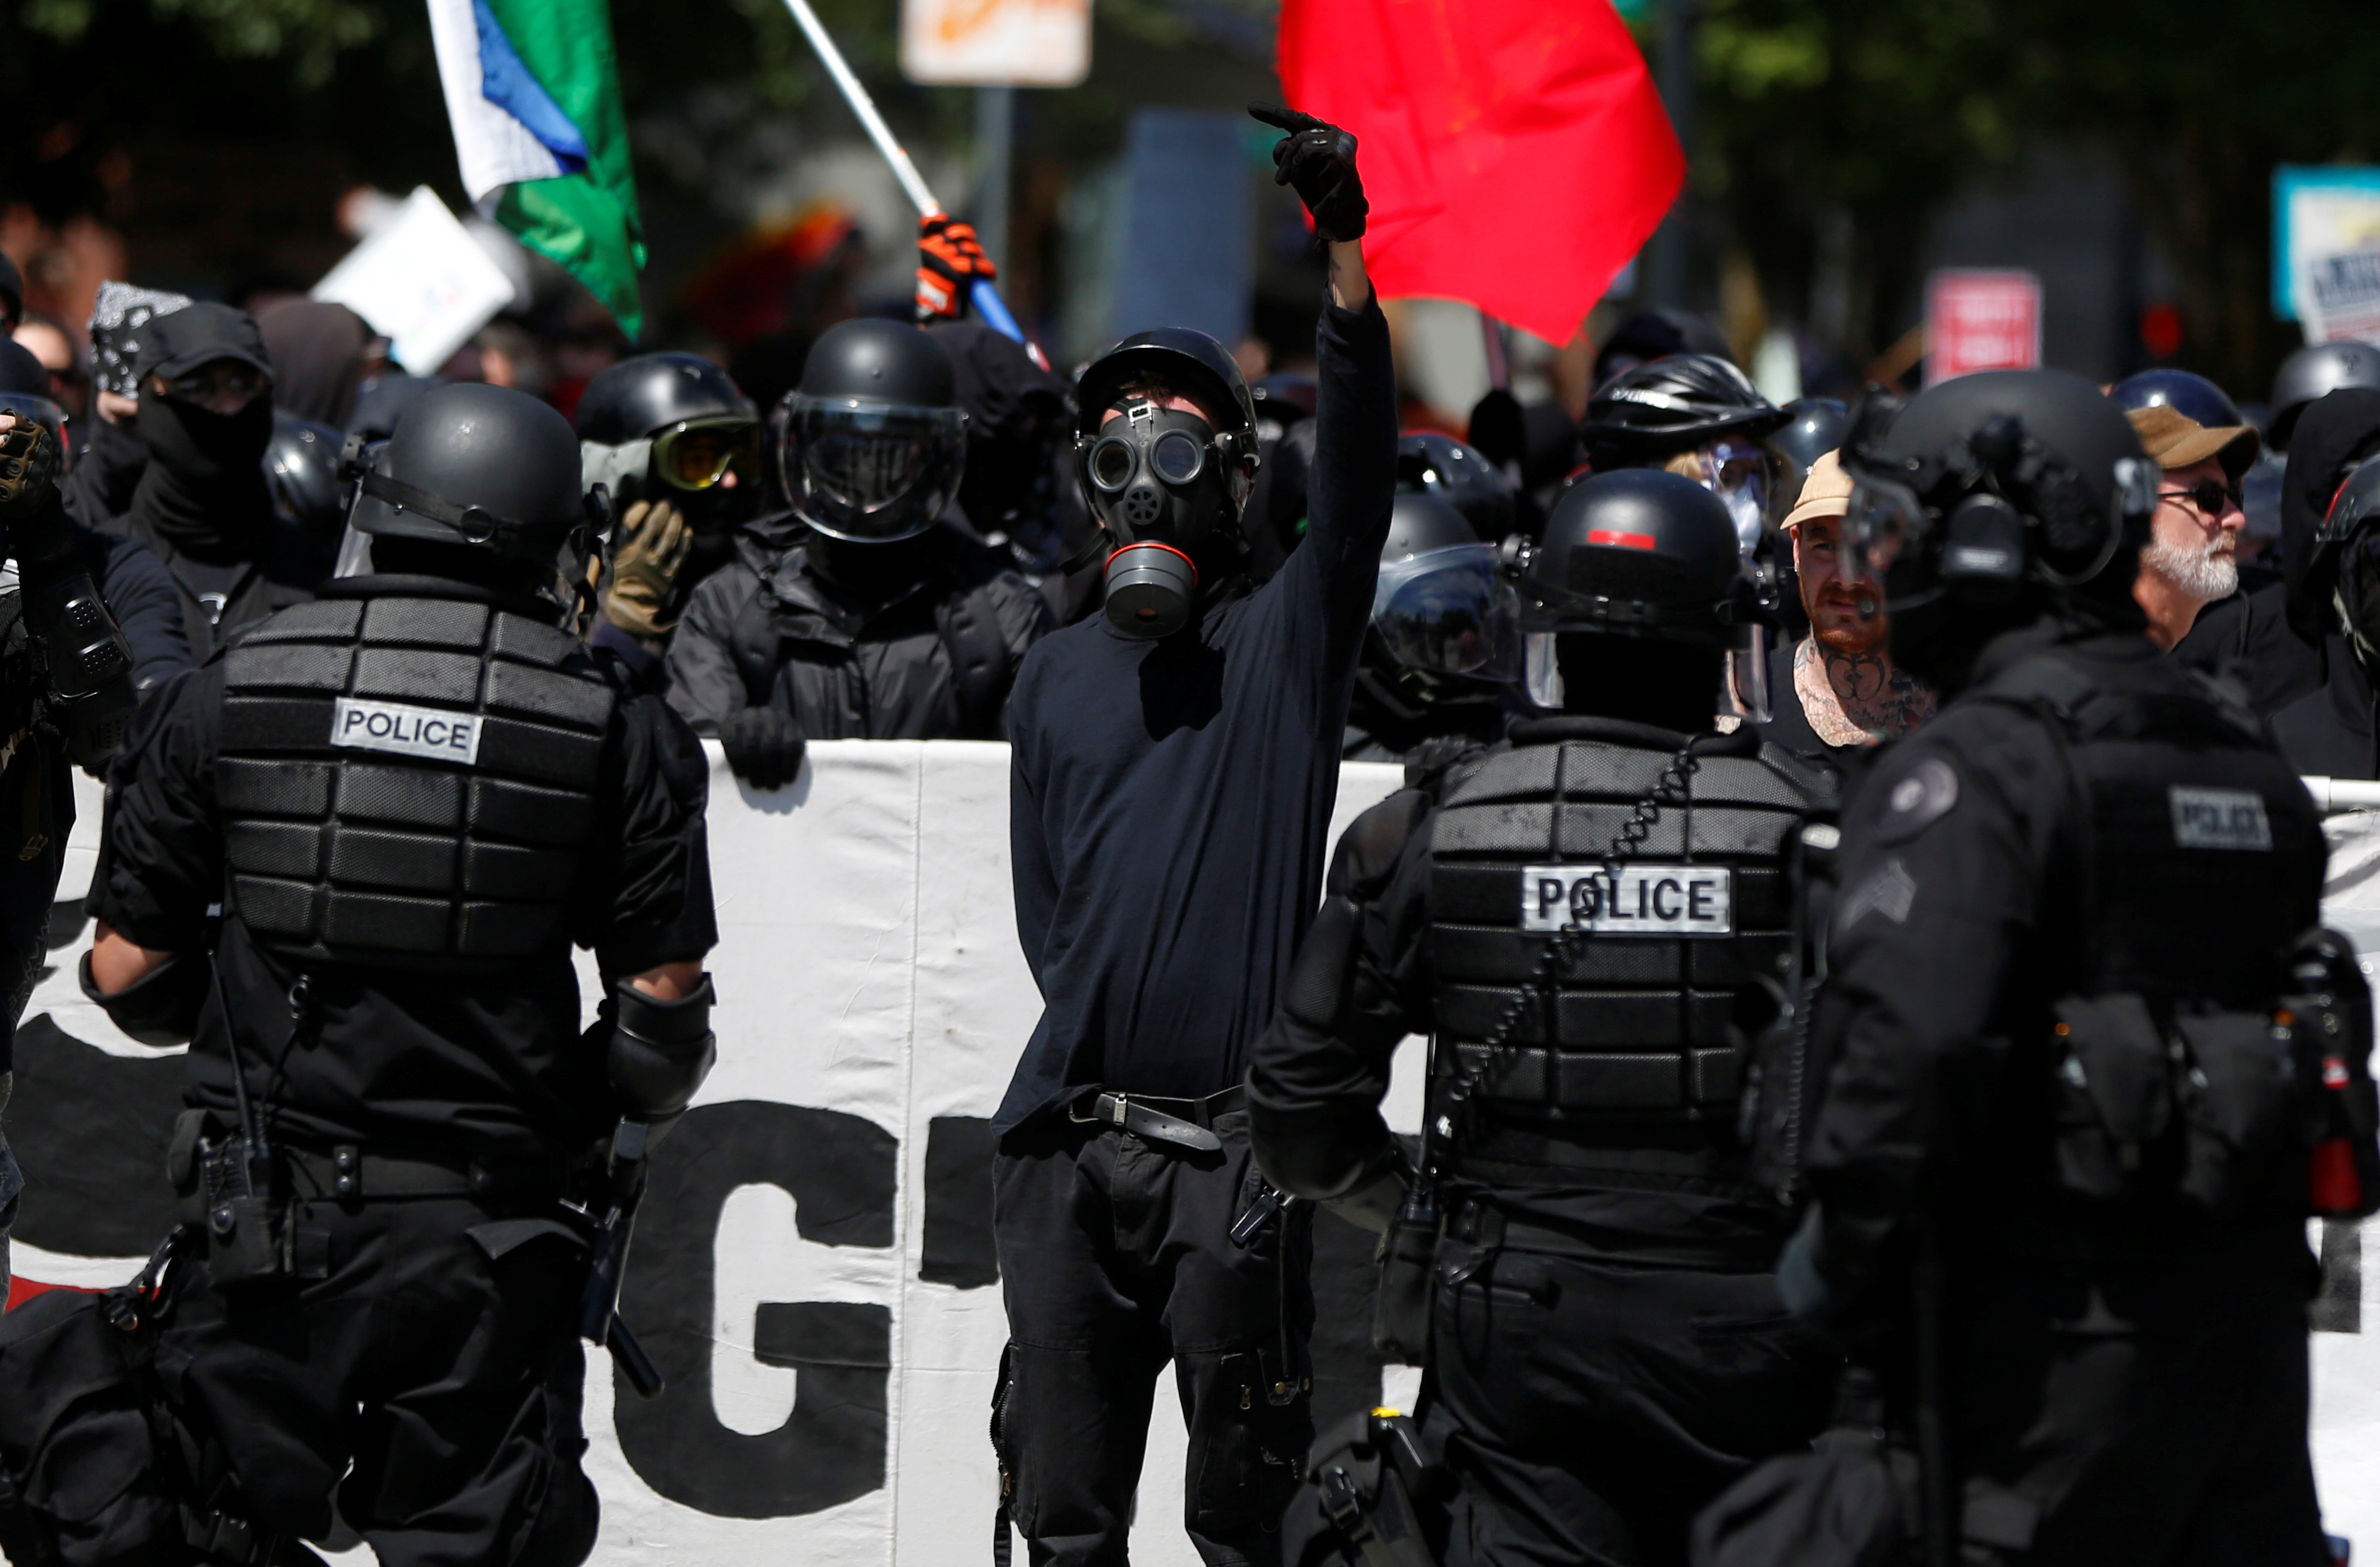 Counter-demonstrators are held back by police during a rally in Portland